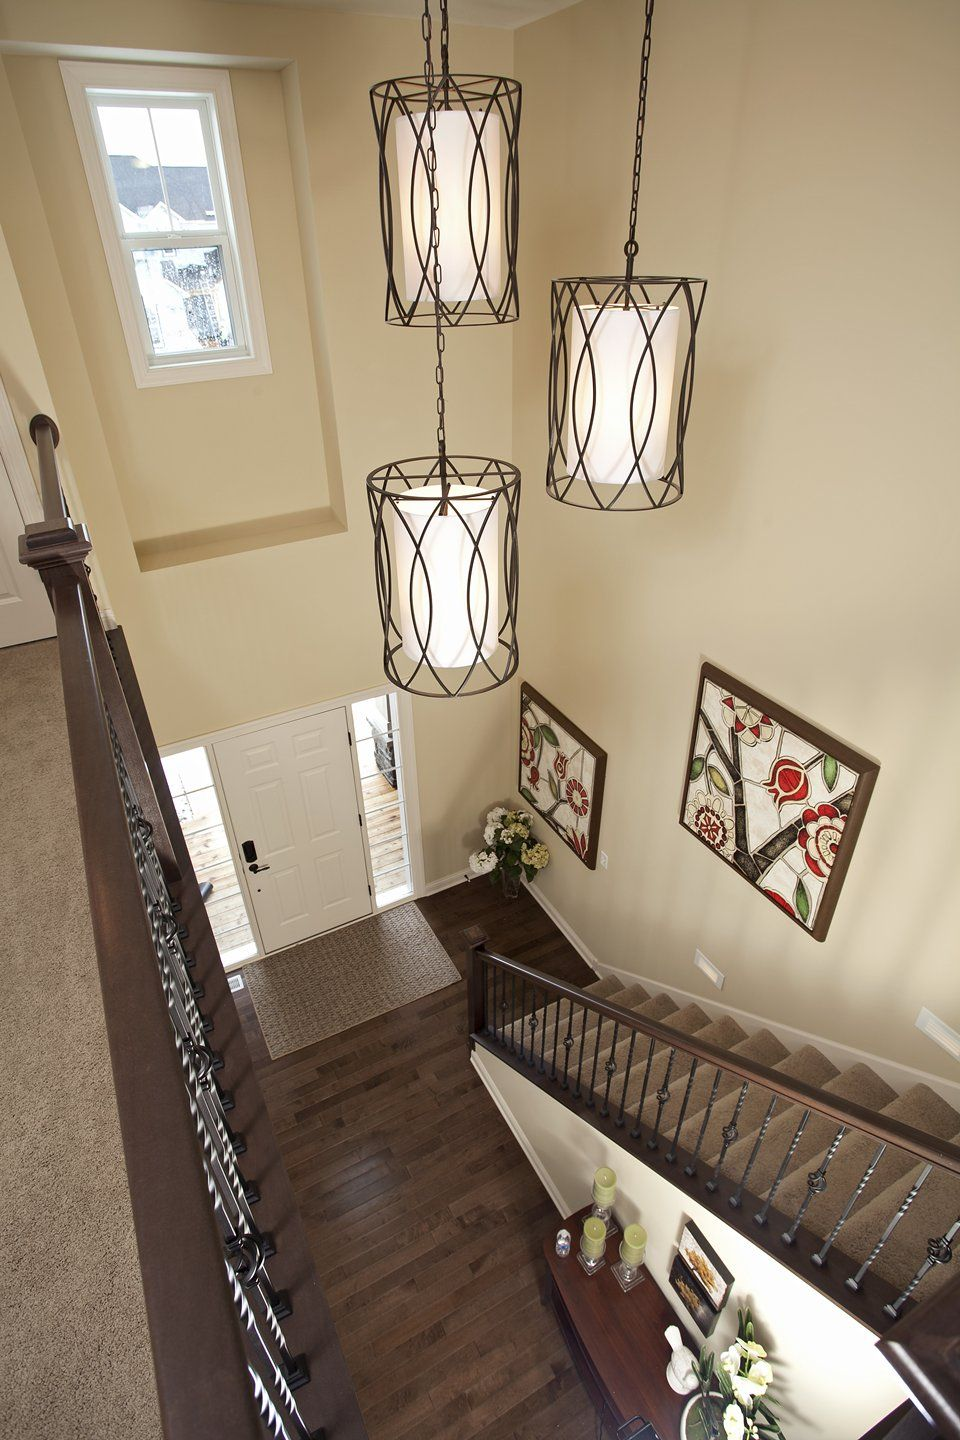 Stairway Lighting Fixtures: I Adore Staircases That Look Like This And Have The